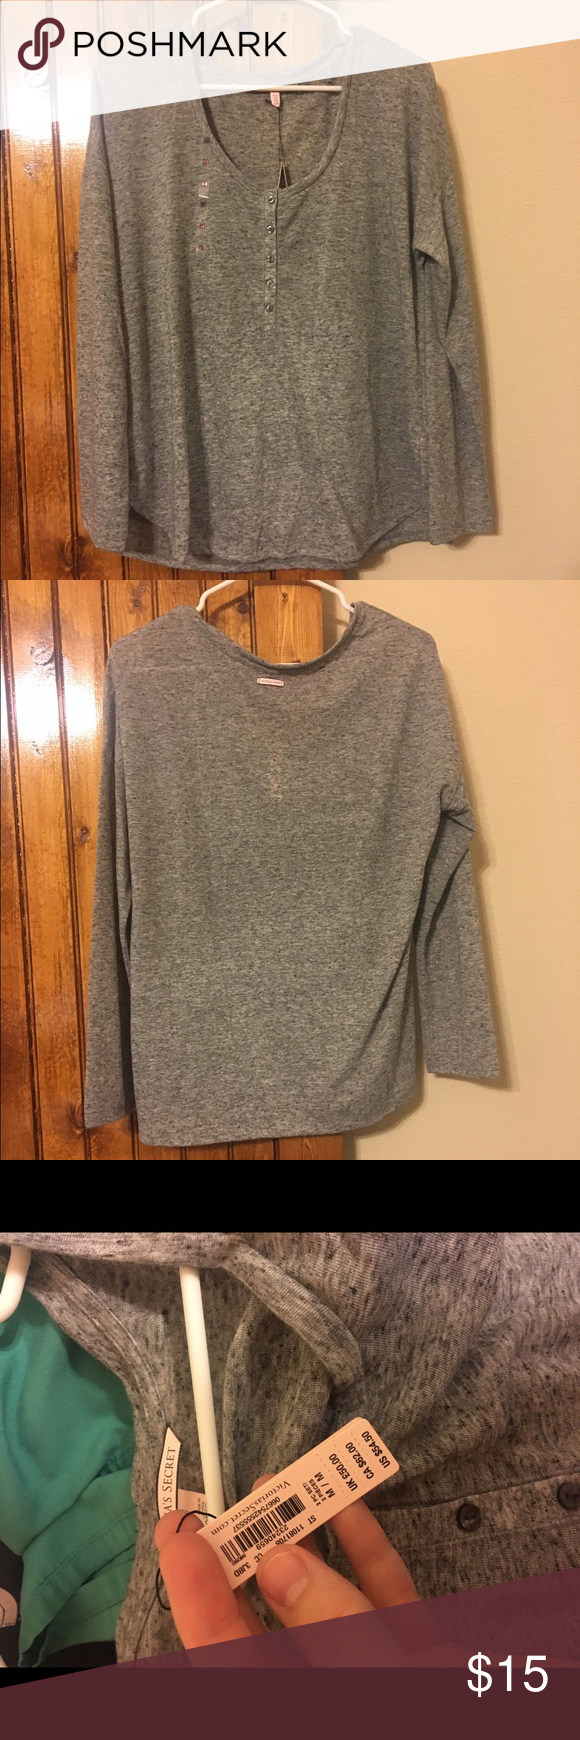 Victoria's Secret PJ top, M Have this top already and love it. TOP only.  NWT! Only selling because I don't need two tops that are the exact same, otherwise LOVE. Victoria's Secret Tops Tees - Long Sleeve